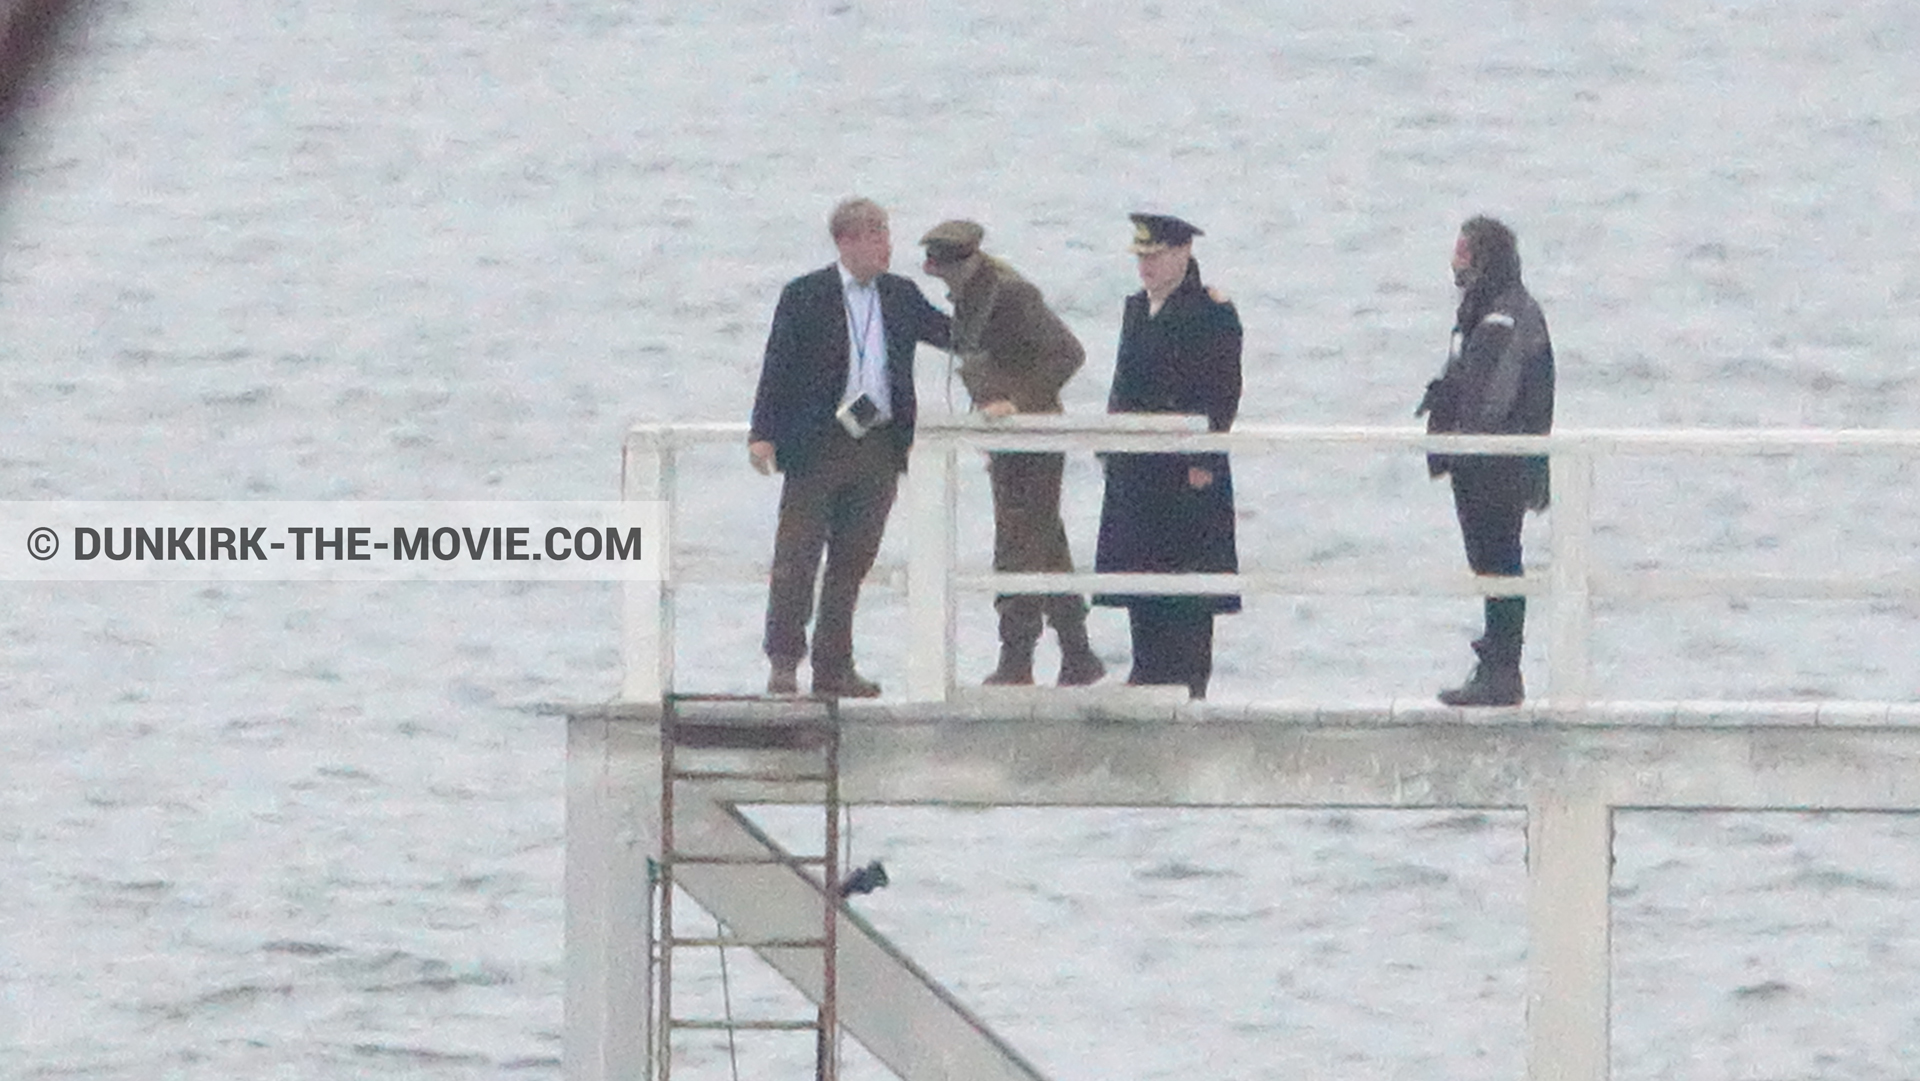 Picture with actor, Hoyte van Hoytema, EST pier, Kenneth Branagh, Christopher Nolan,  from behind the scene of the Dunkirk movie by Nolan